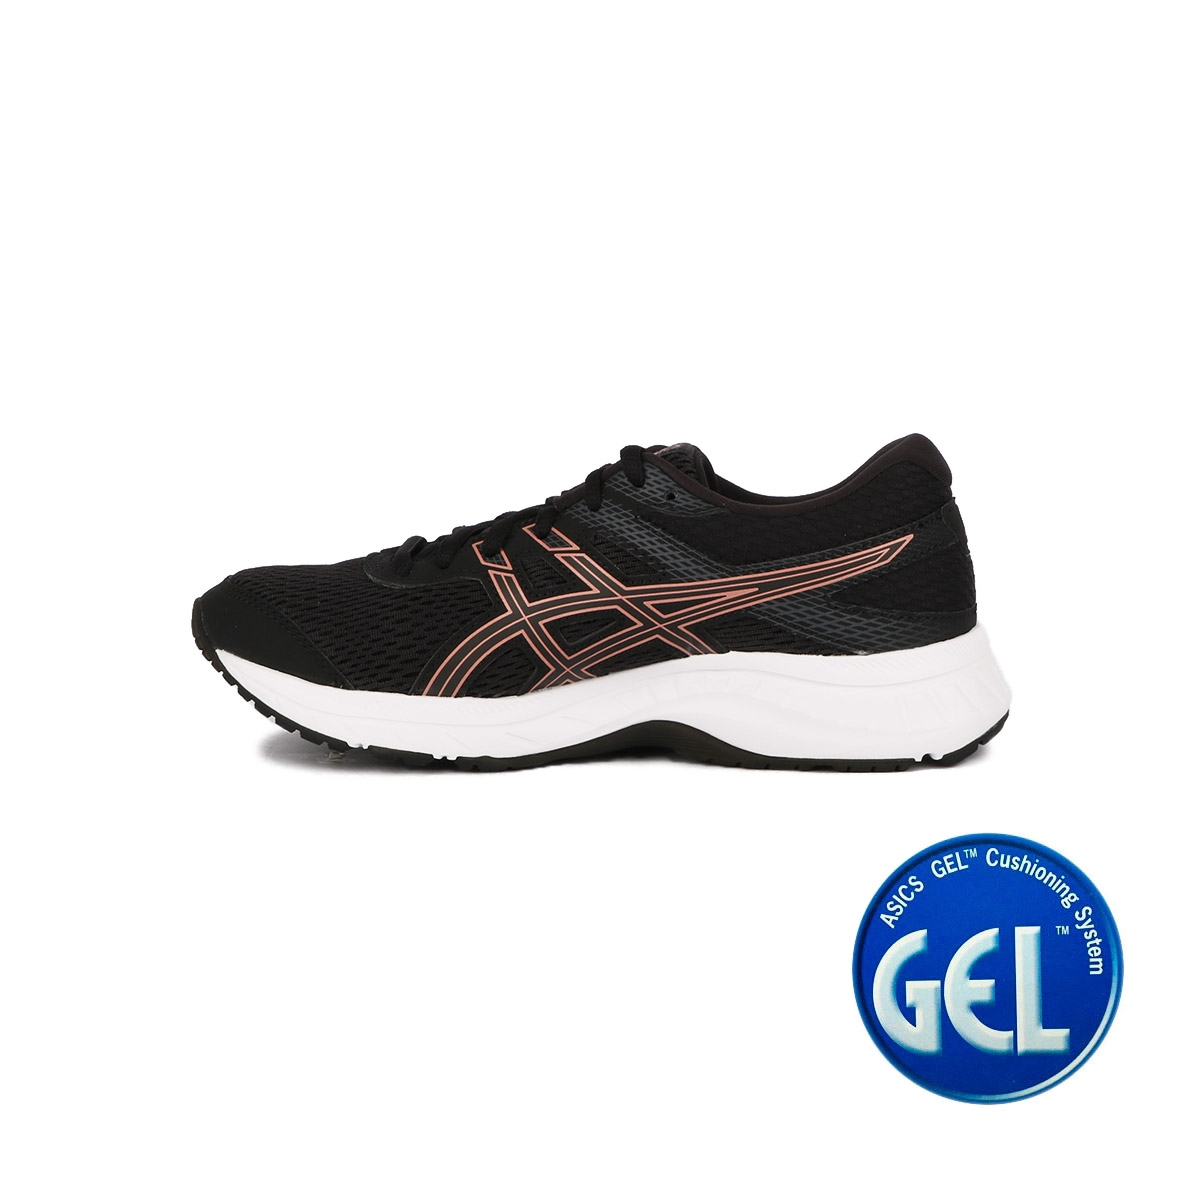 Asics Contend 6 Black Rose Gold Mujer